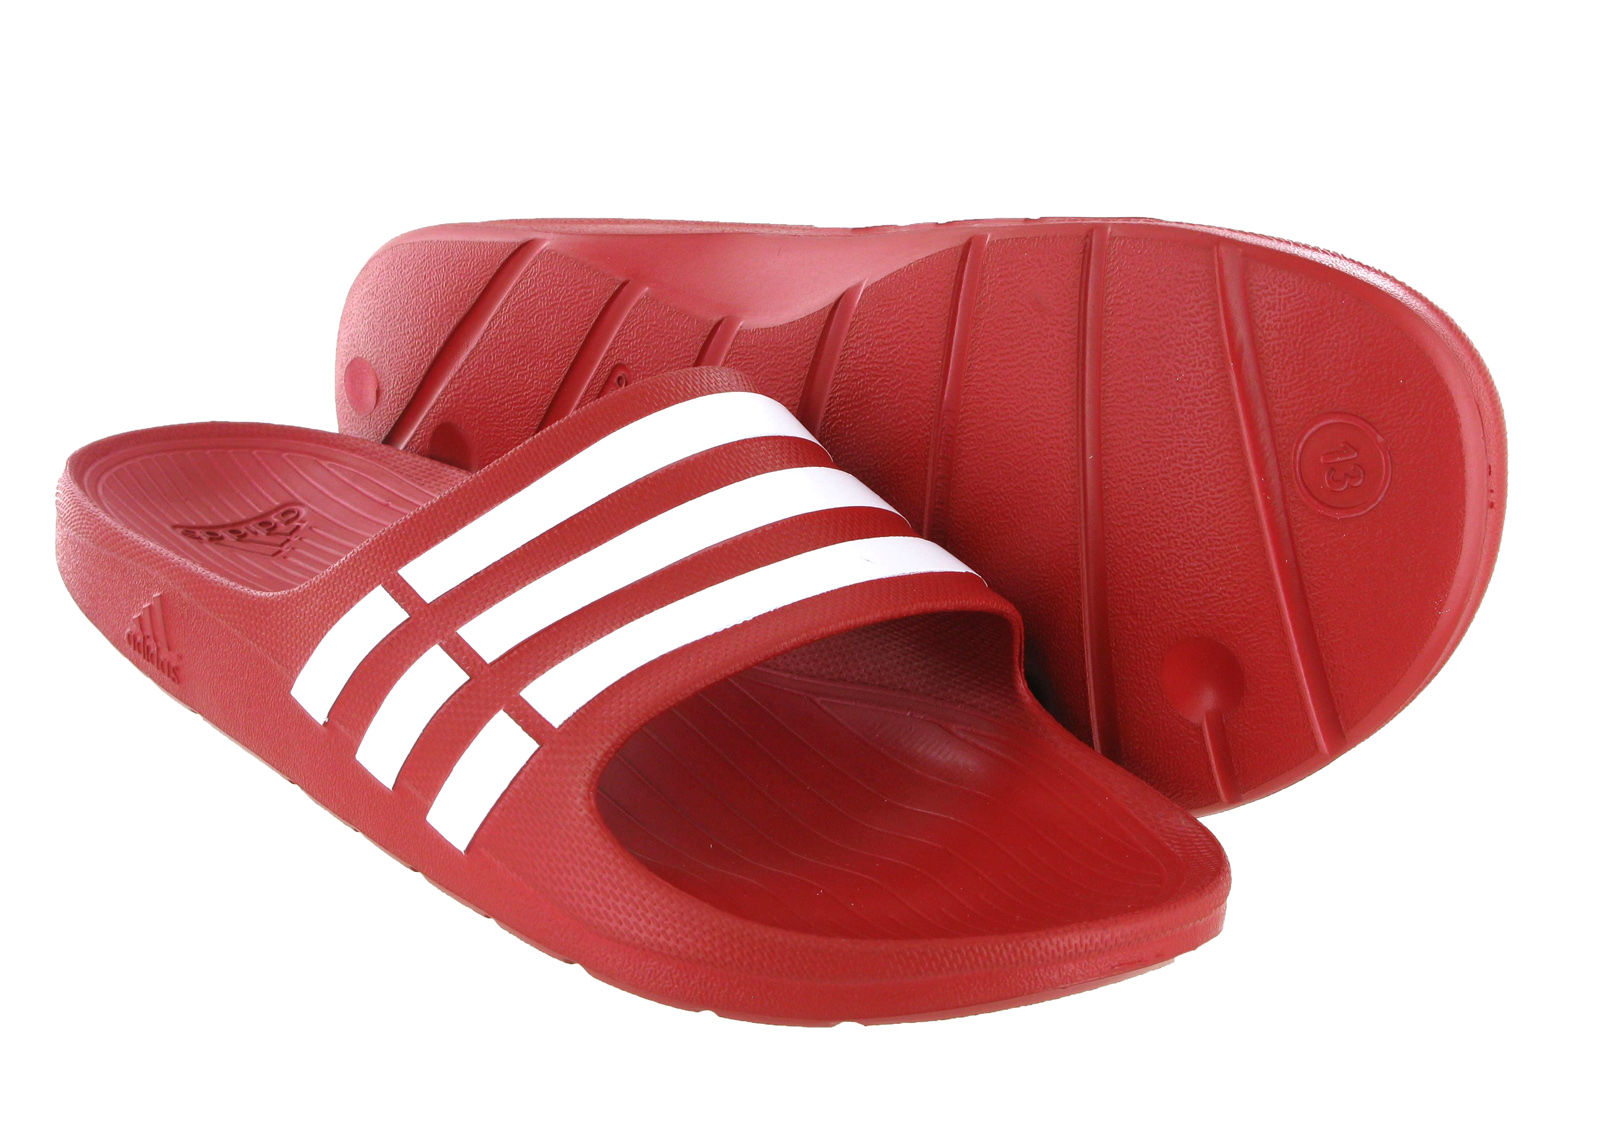 4a12f821a Buy adidas duramo slide flip flops   OFF53% Discounted